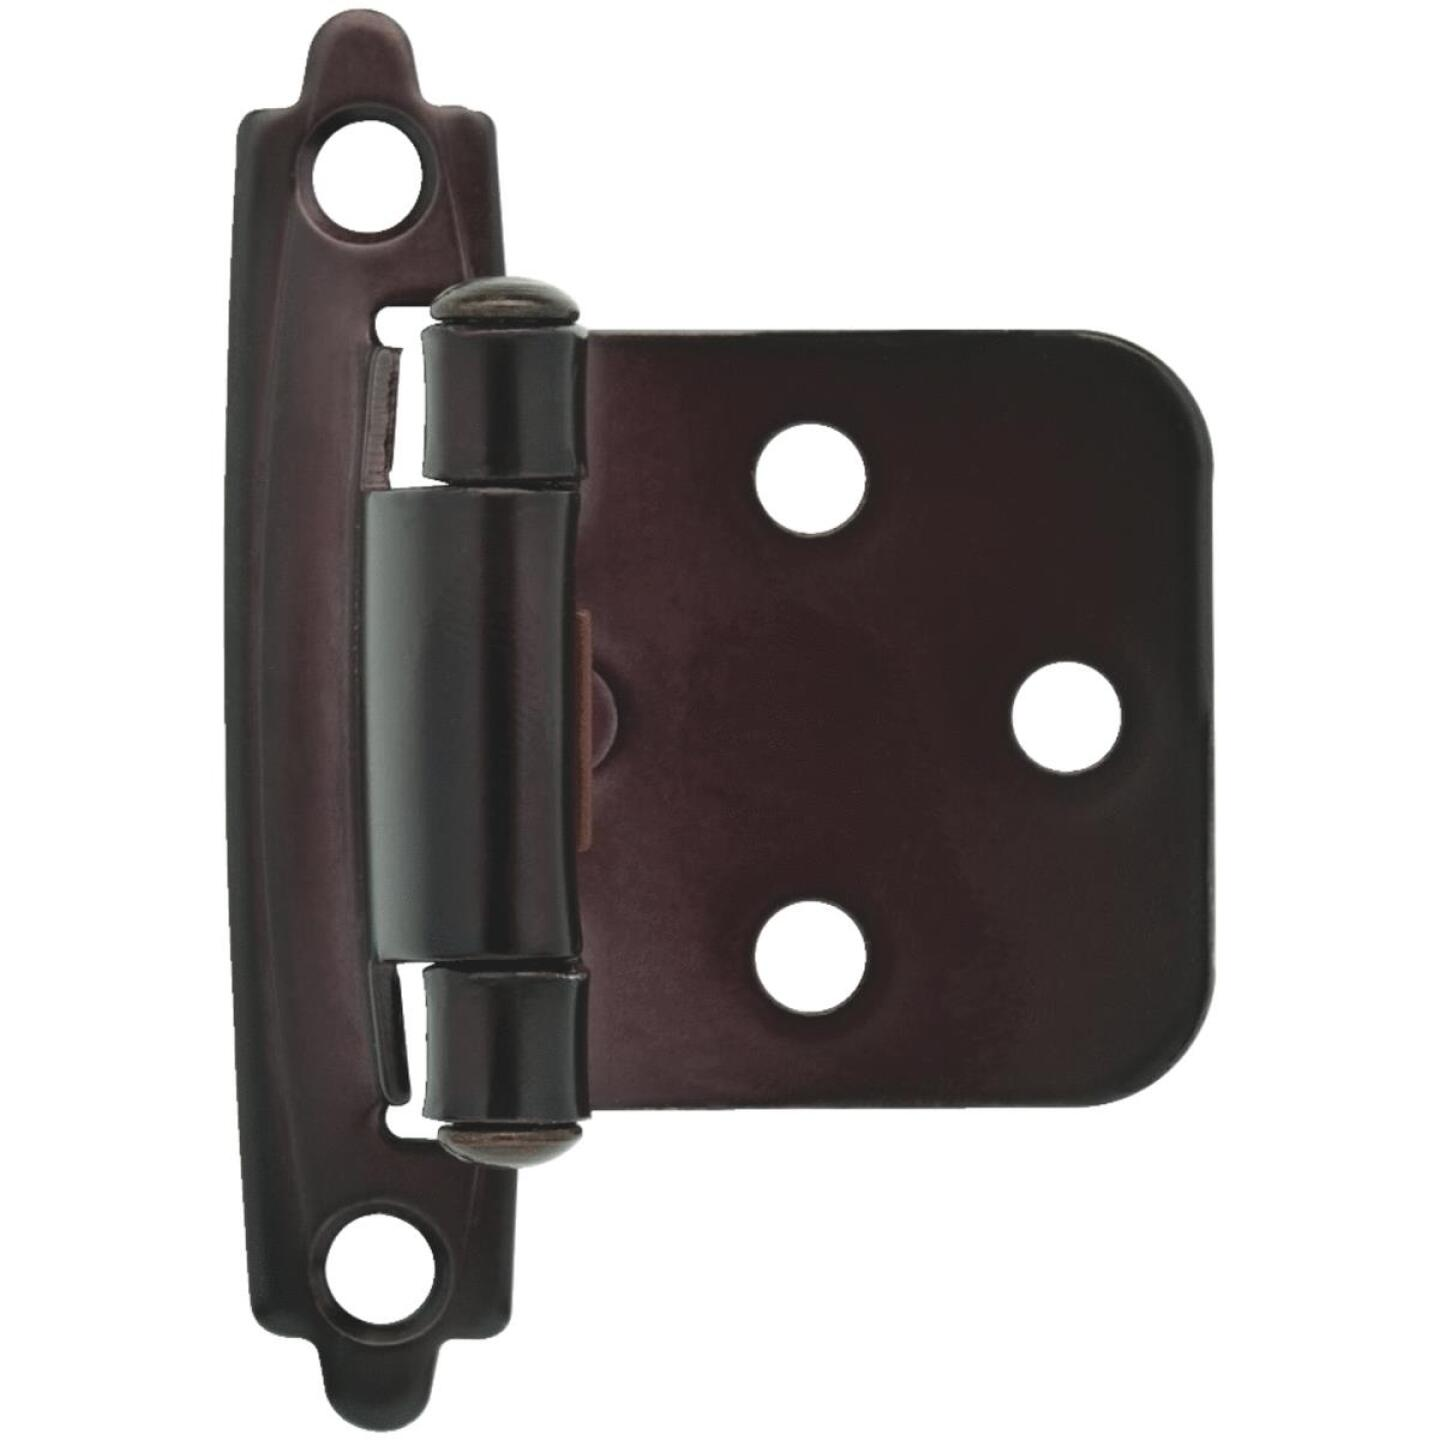 Liberty Oil Rubbed Bronze Self-Closing Overlay Hinge (2-Pack) Image 1